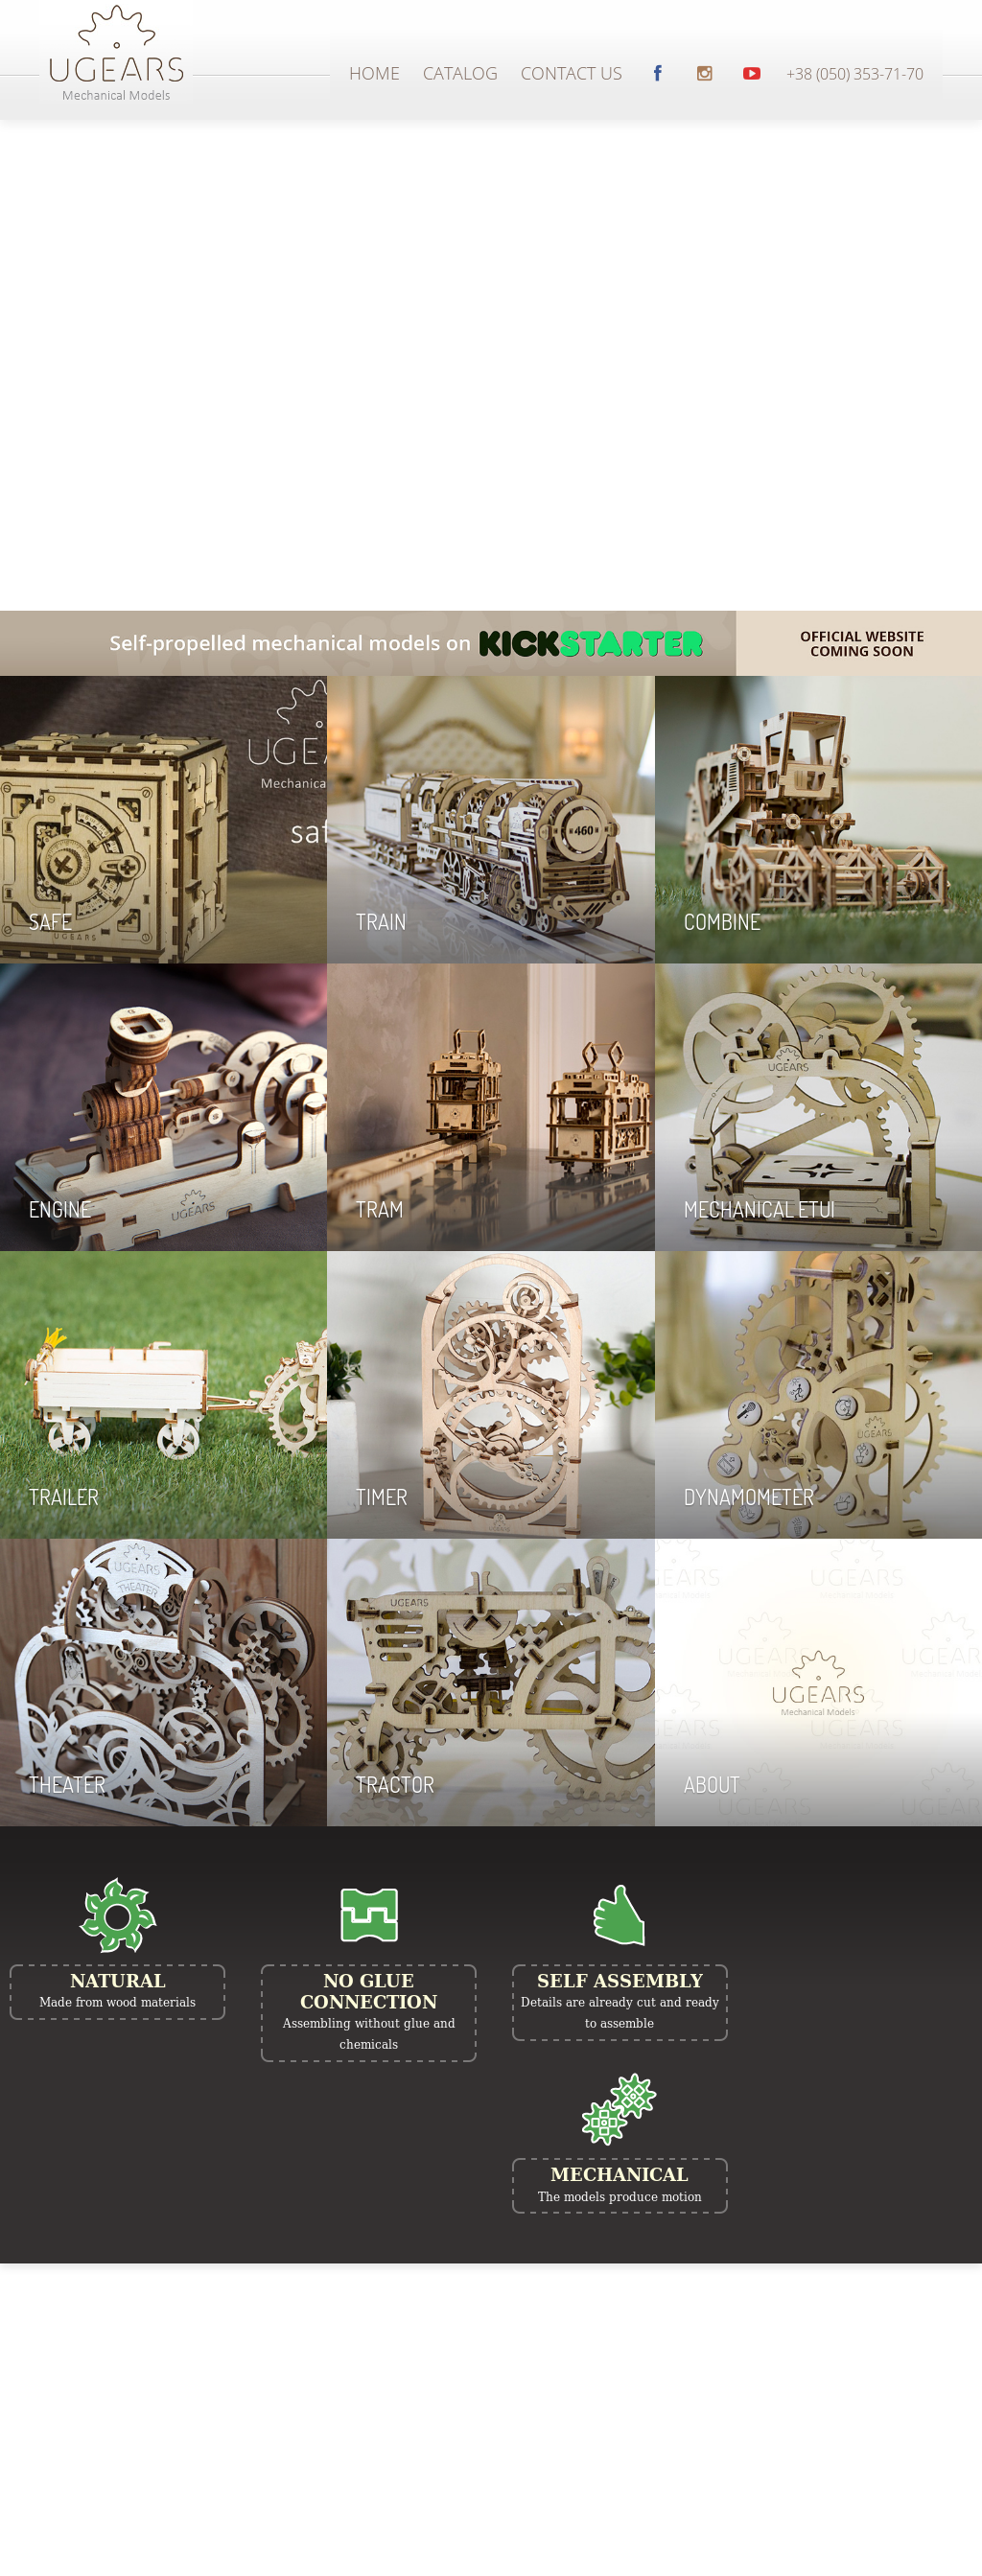 Owler Reports - UGears Models posted a video